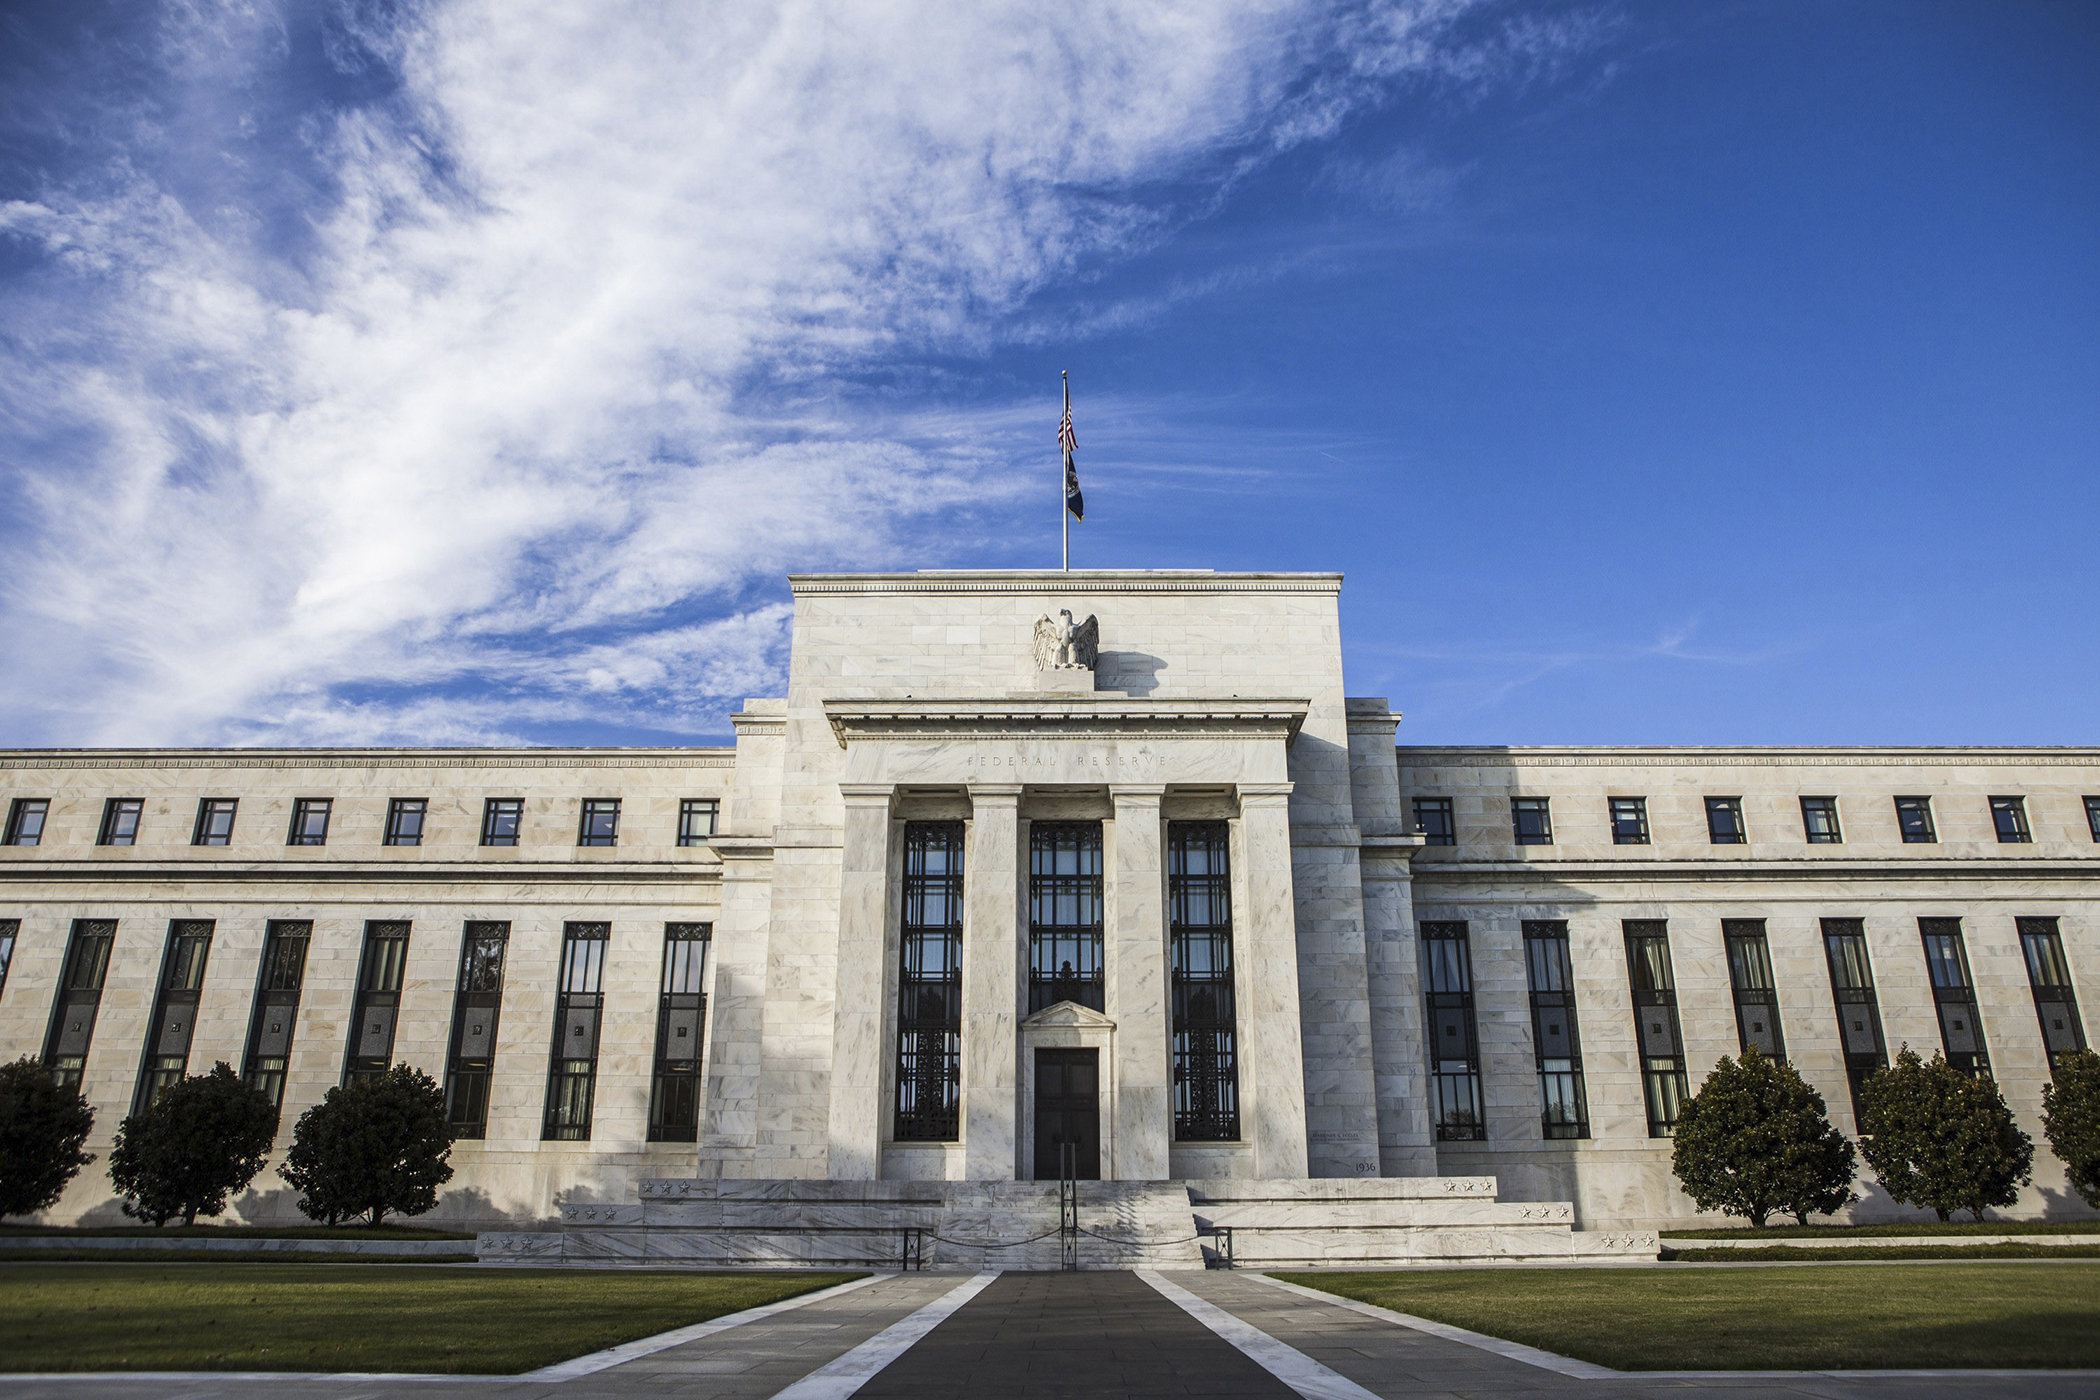 A general view of the Federal Reserve Building in Washington, United States.